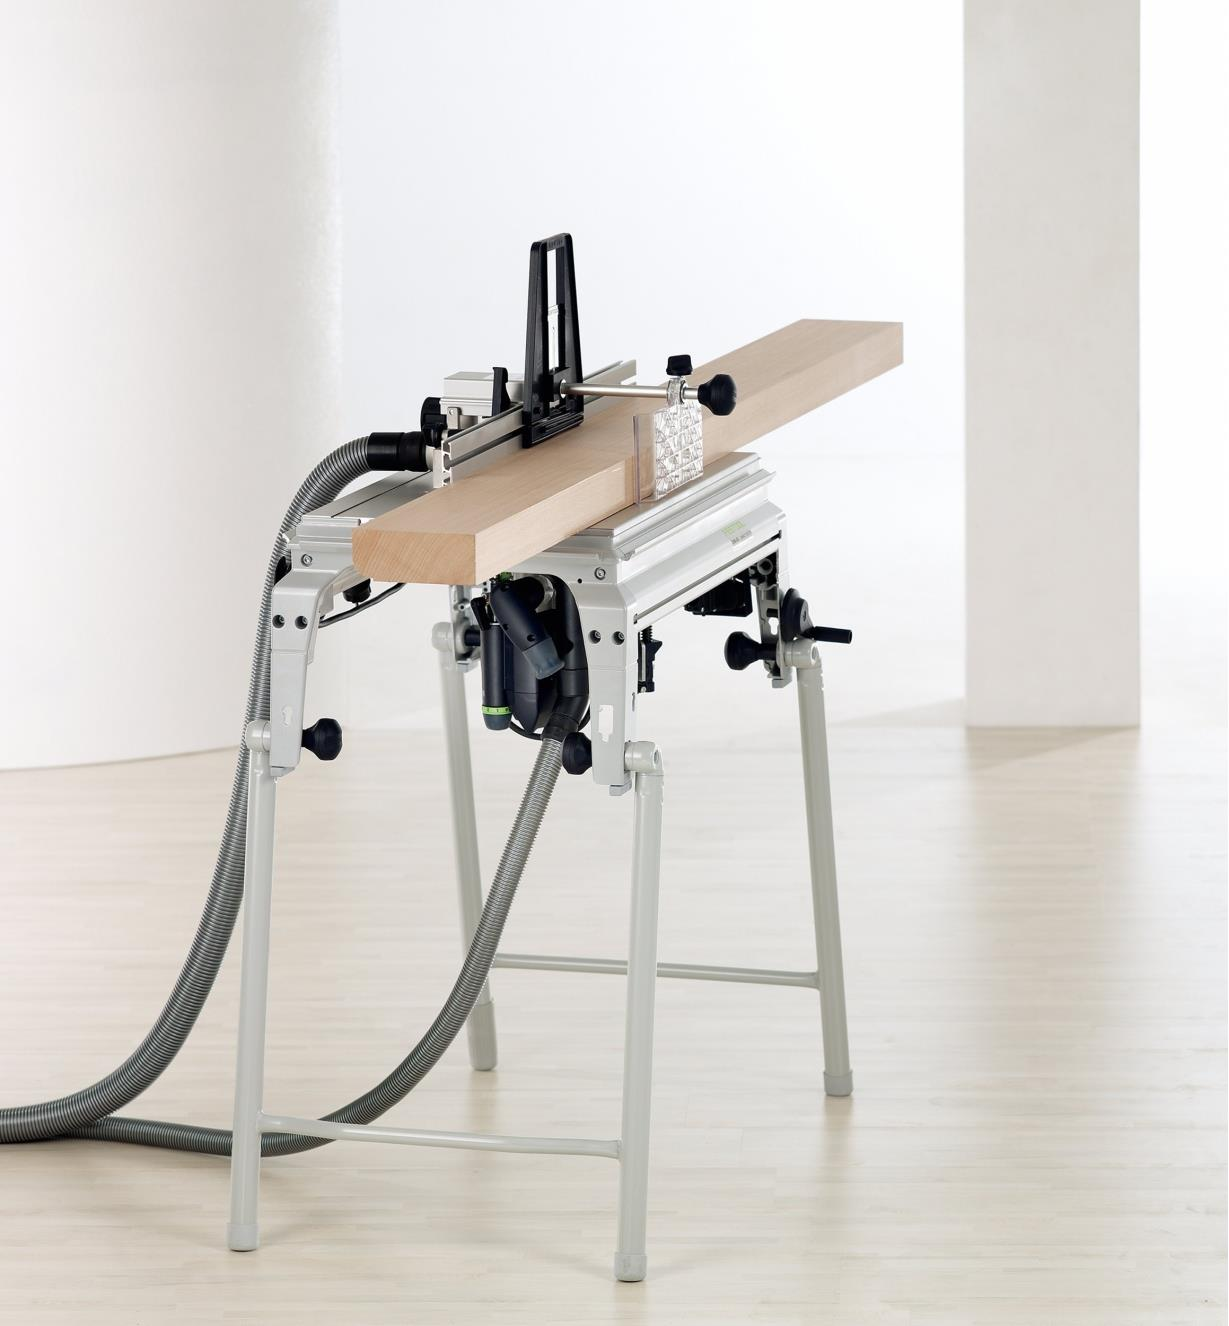 Router table set up to cut an ogee profile along the edge of a board